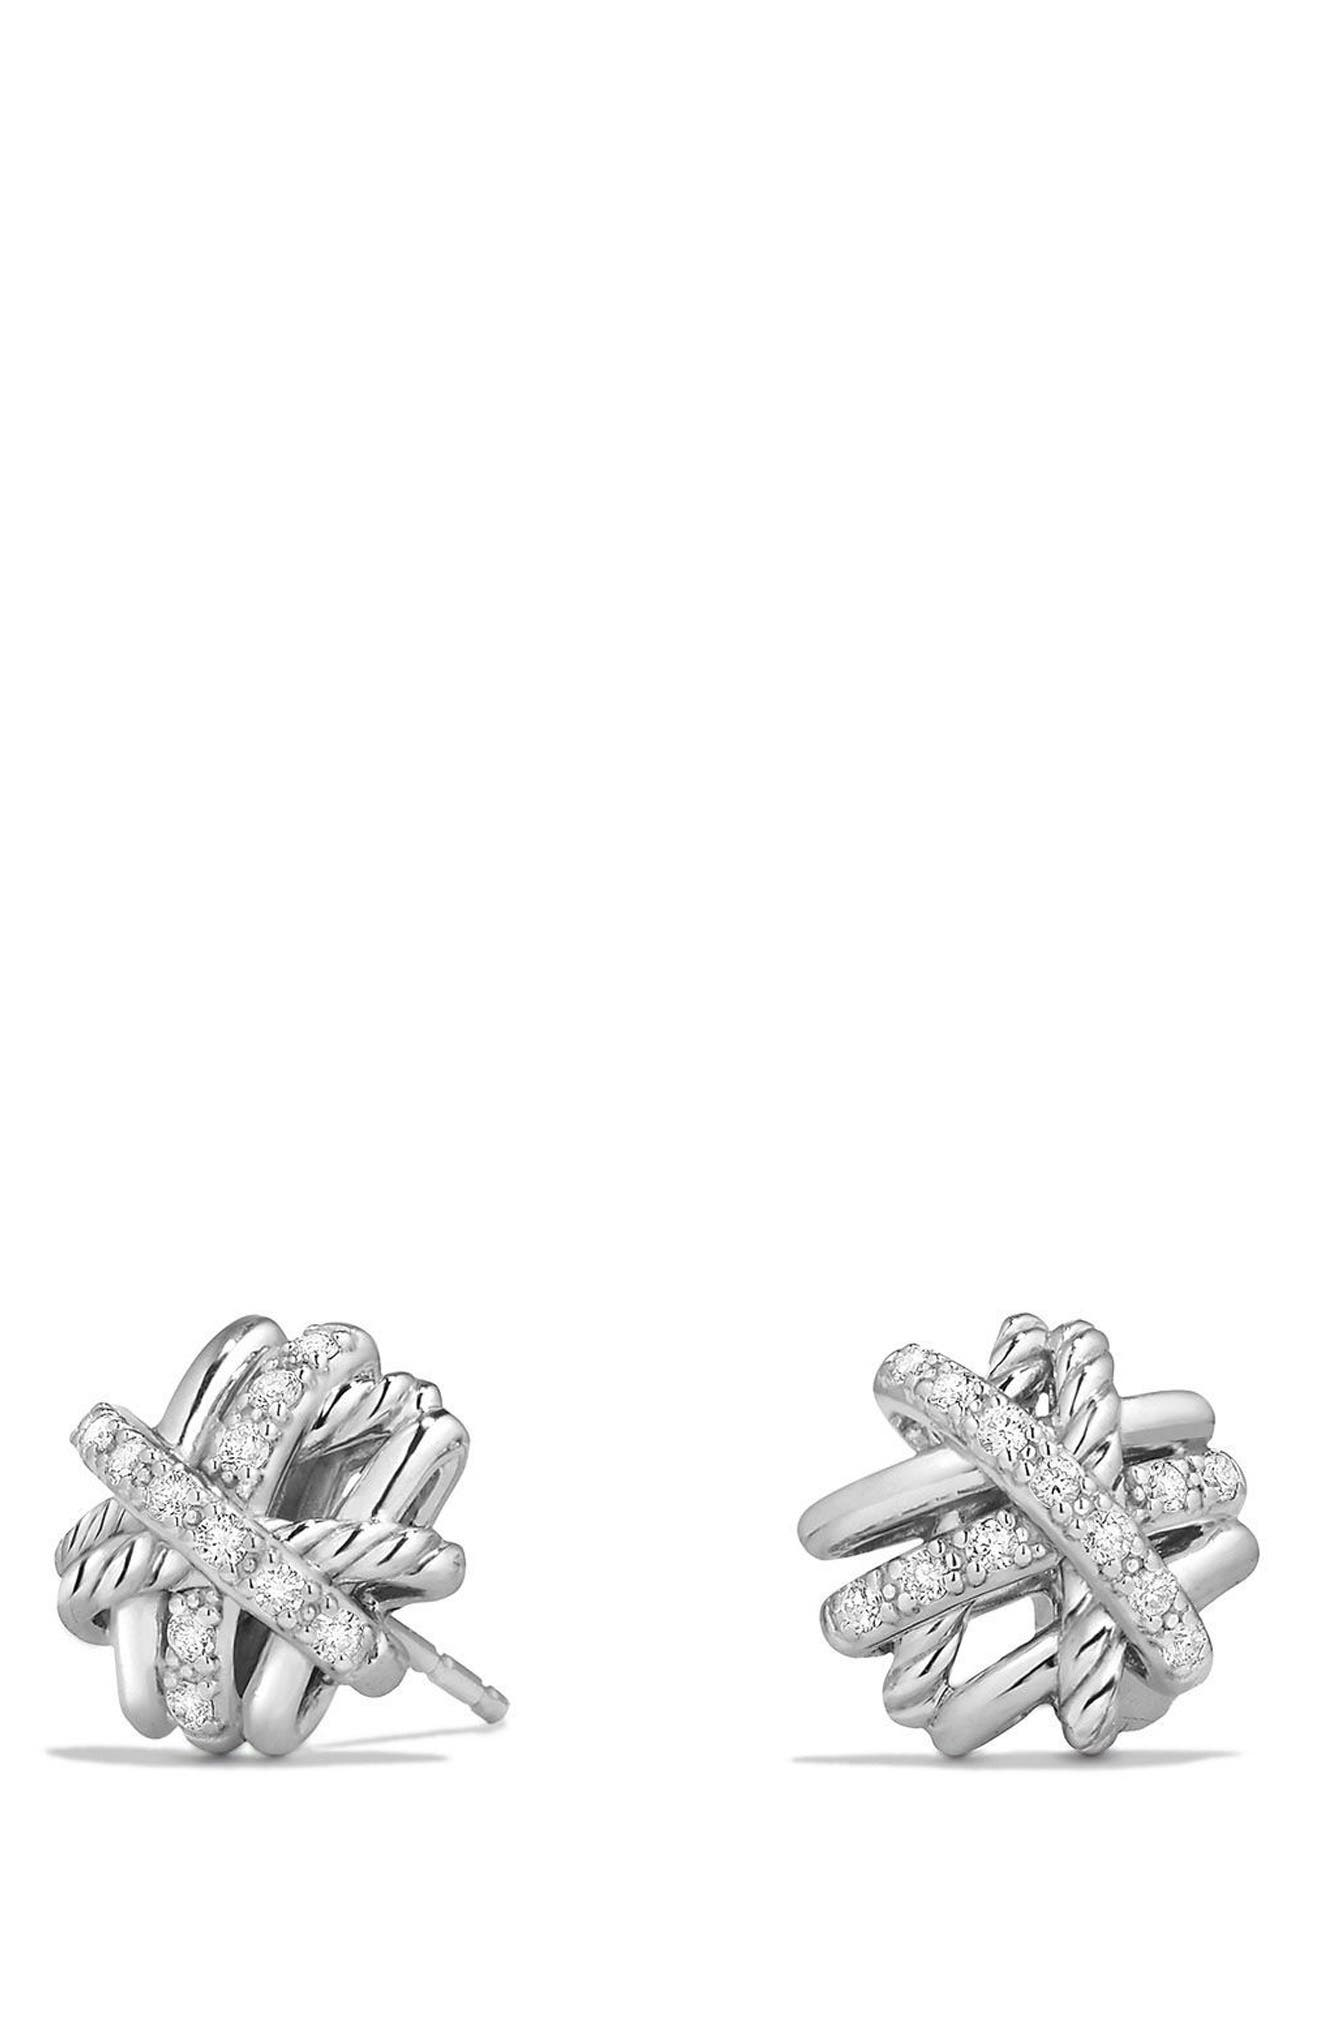 DAVID YURMAN Crossover Stud Earrings with Diamonds